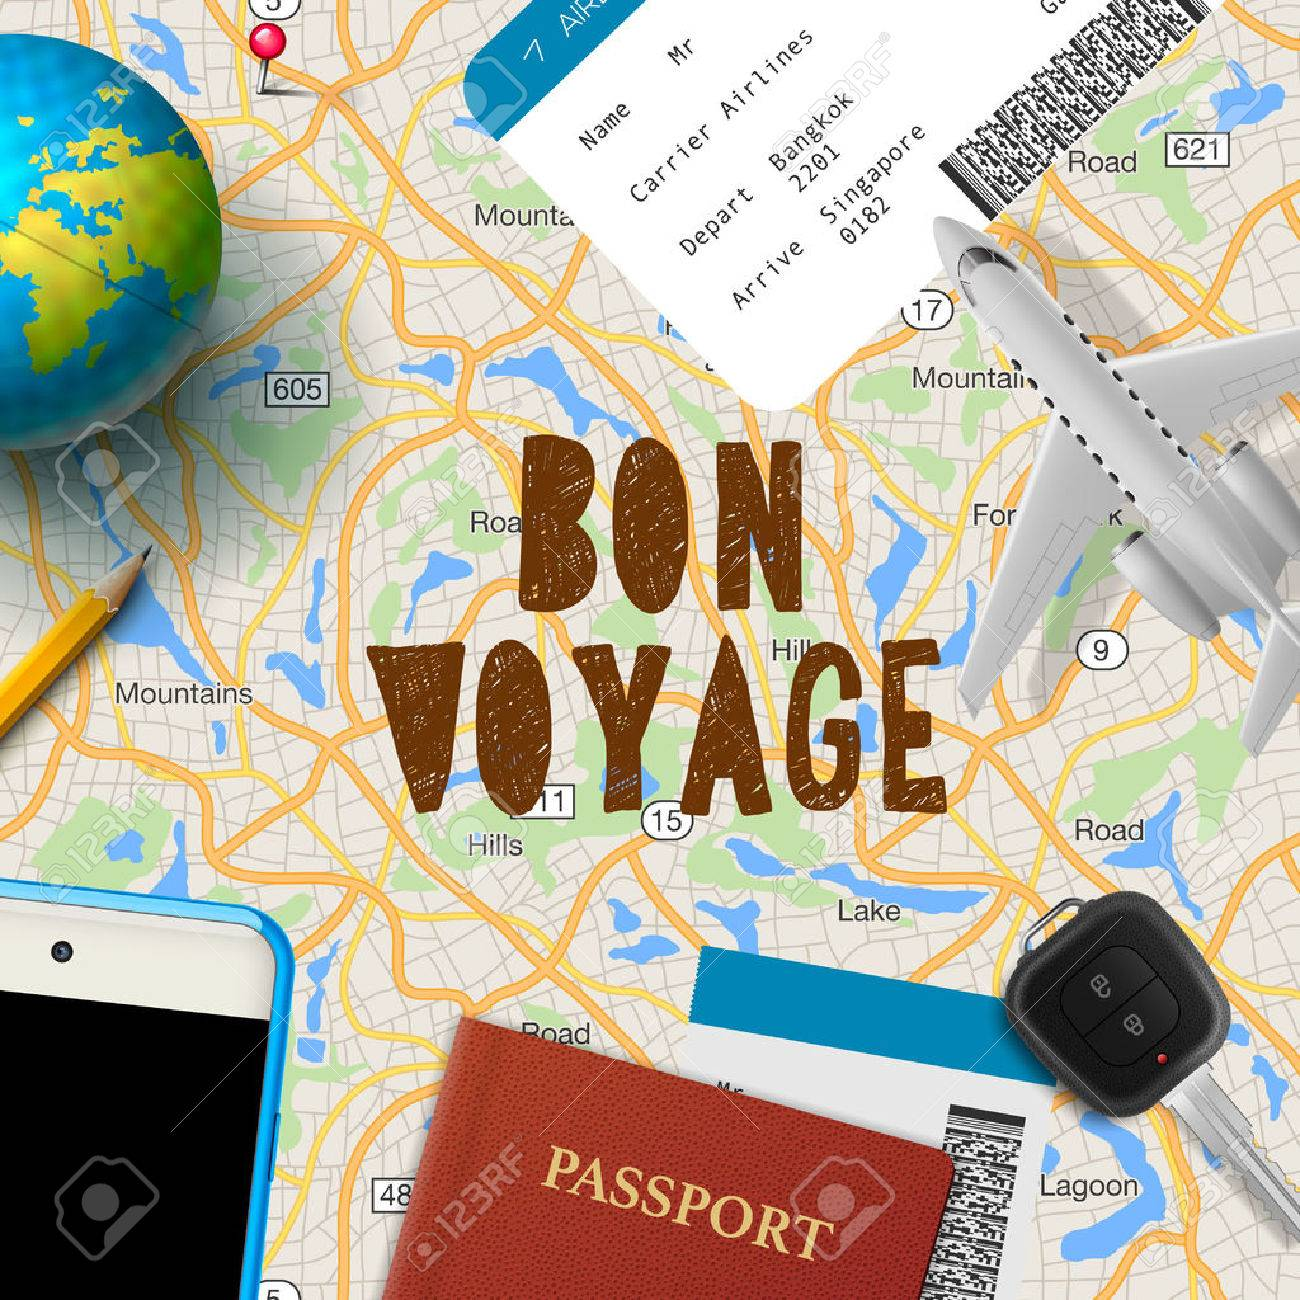 Bon voyage, planning vacation trip with map, cell phone, money, passport, road, vector illustration. Standard-Bild - 49592610